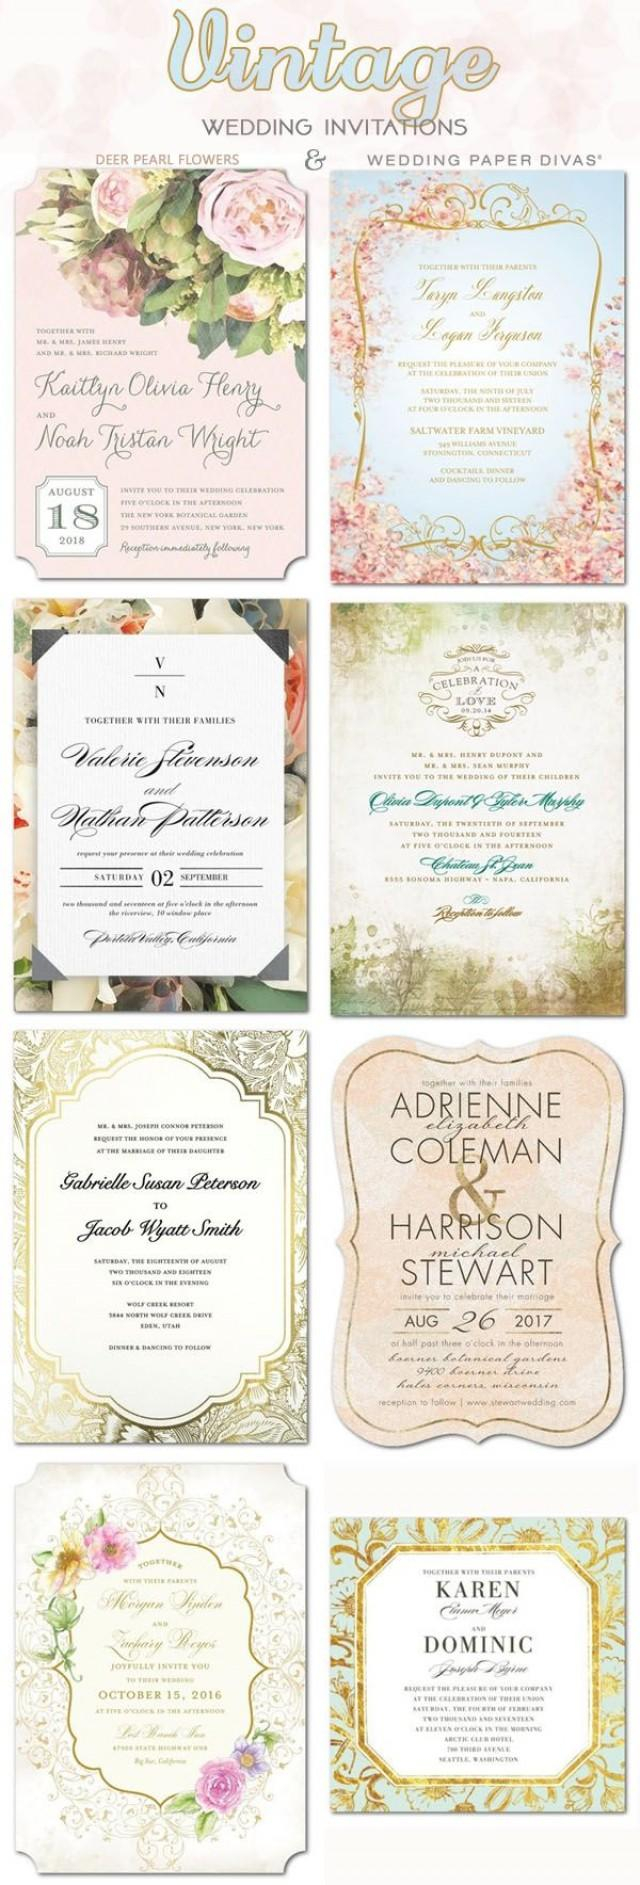 Wedding Invitations Wedding Paper Divas Top 8 Themed Wedding Paper Divas Wedding Invitations Promo Codes